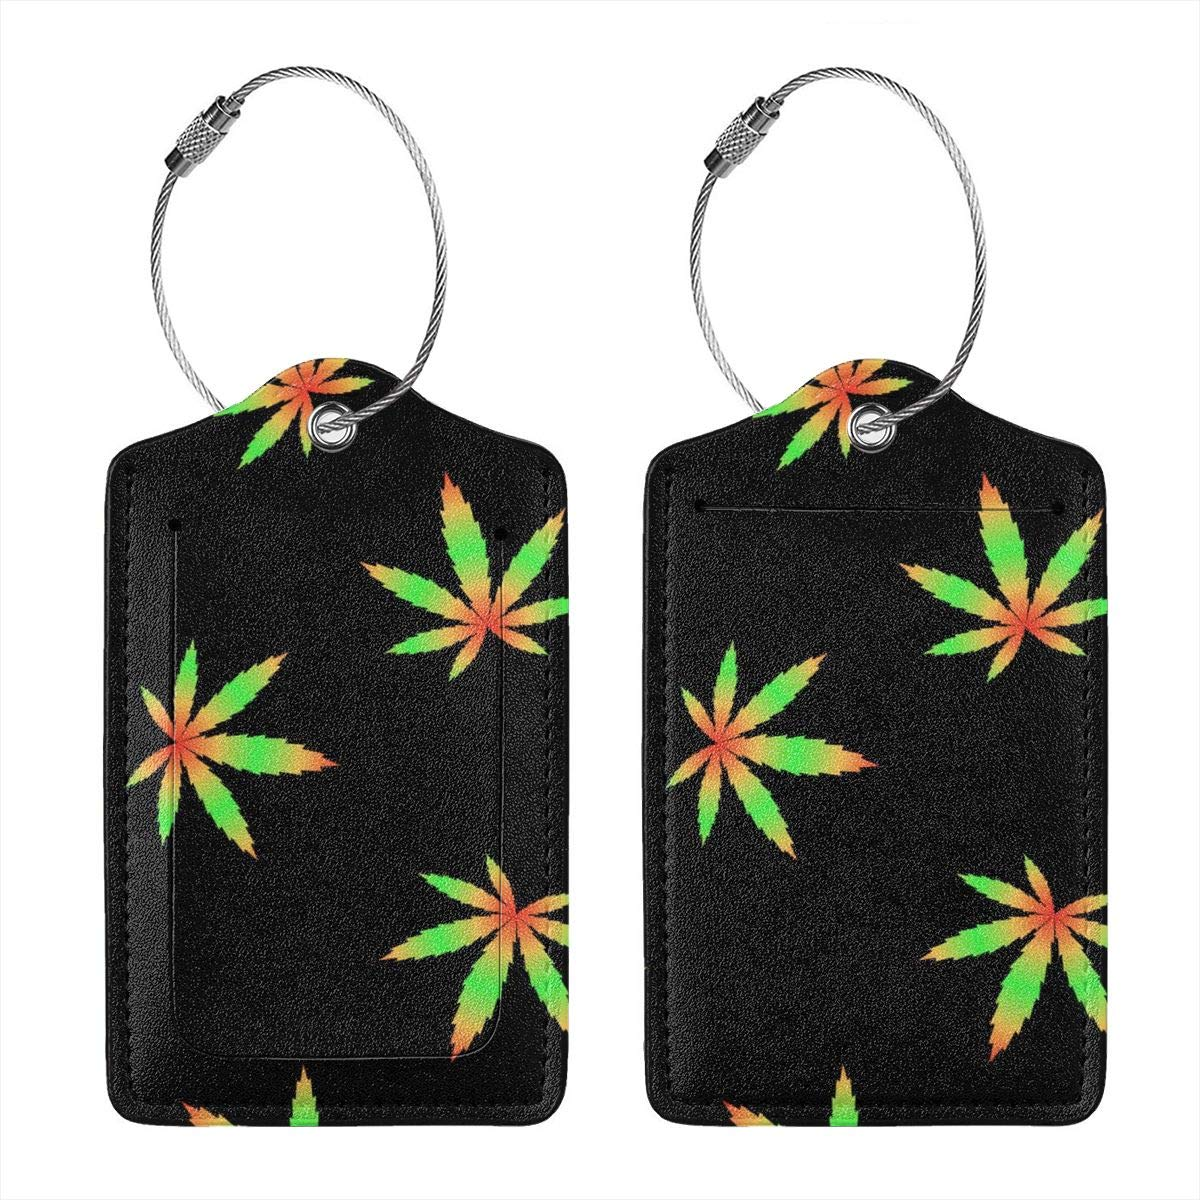 Marijuana Flag Colour Hill Leather Luggage Tags Personalized Address Card With Privacy Flap